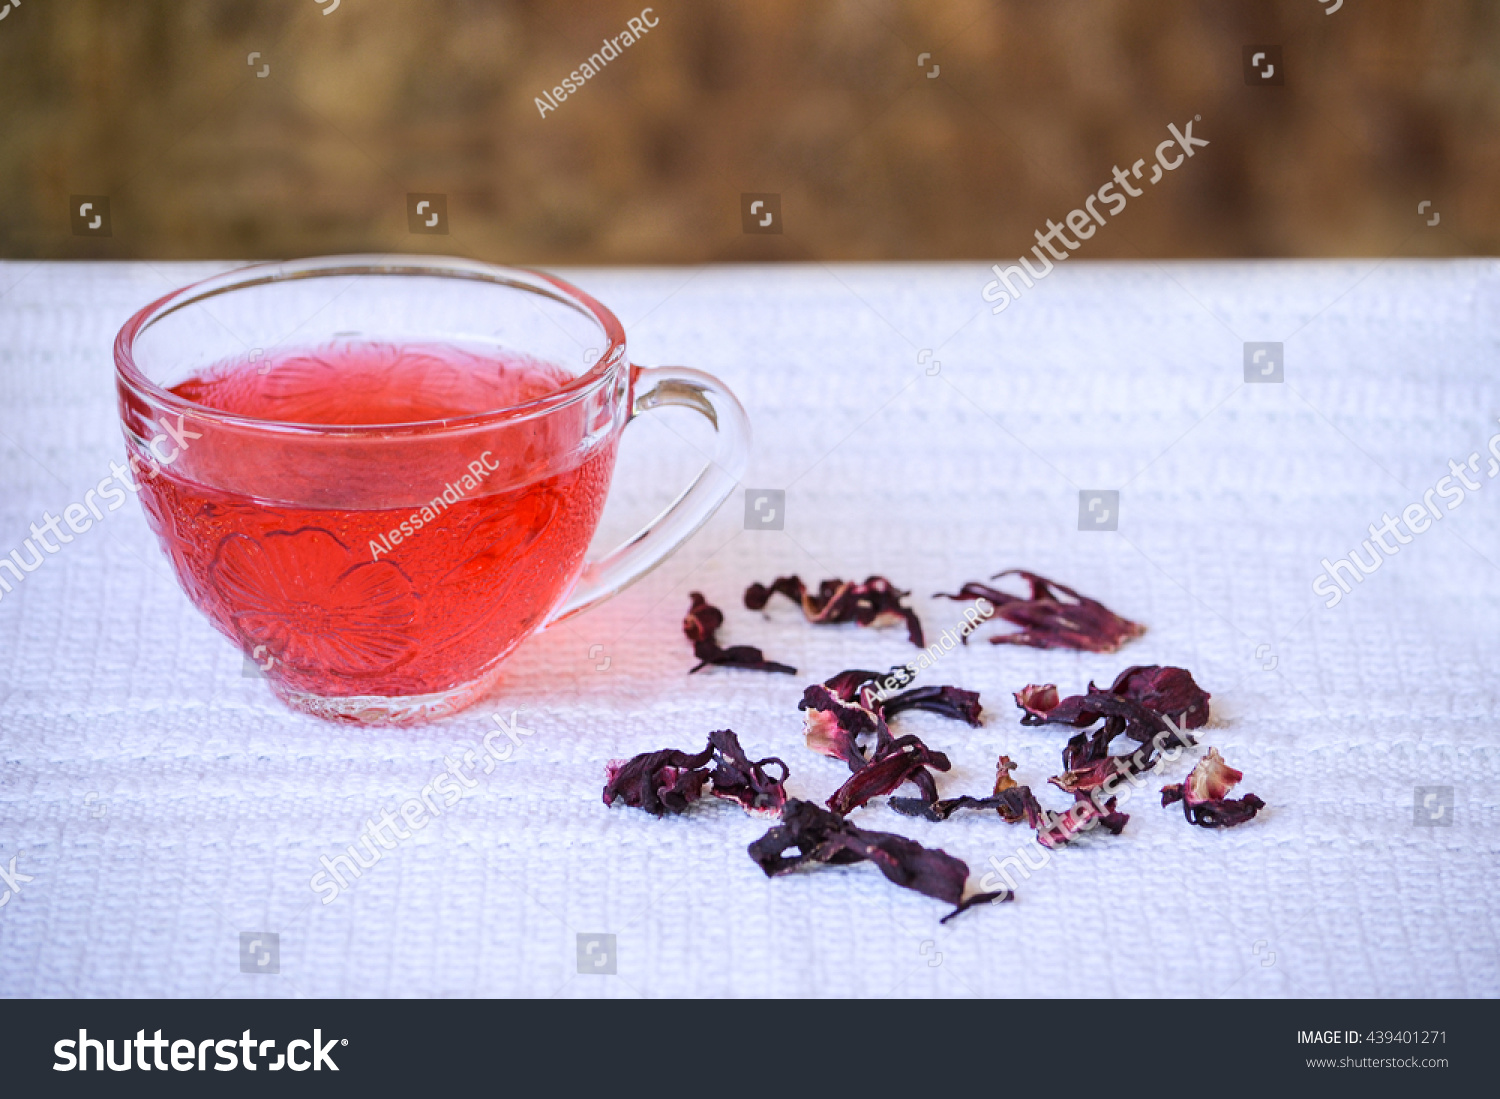 Cup hibiscus tea transparent cup on stock photo 439401271 shutterstock cup of hibiscus tea in transparent cup on white tablecloth beside dried hibiscus flowers izmirmasajfo Images